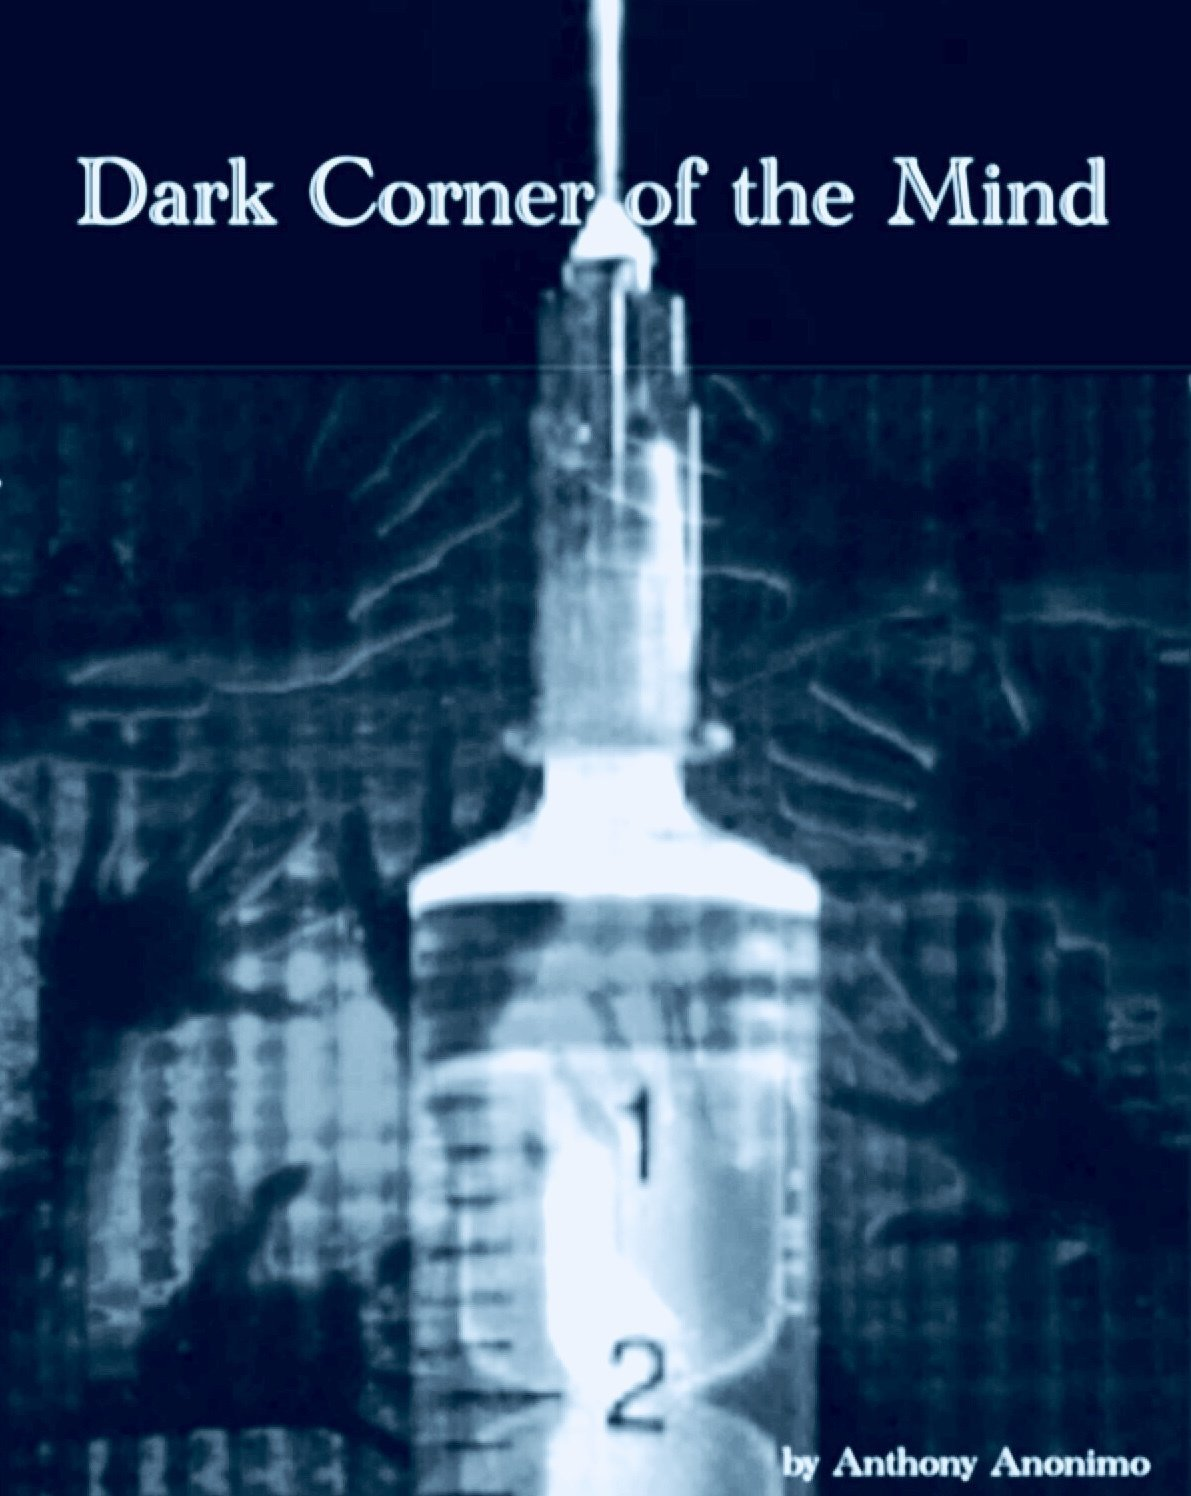 Dark Corner of the Mind - Addiction and Recovery